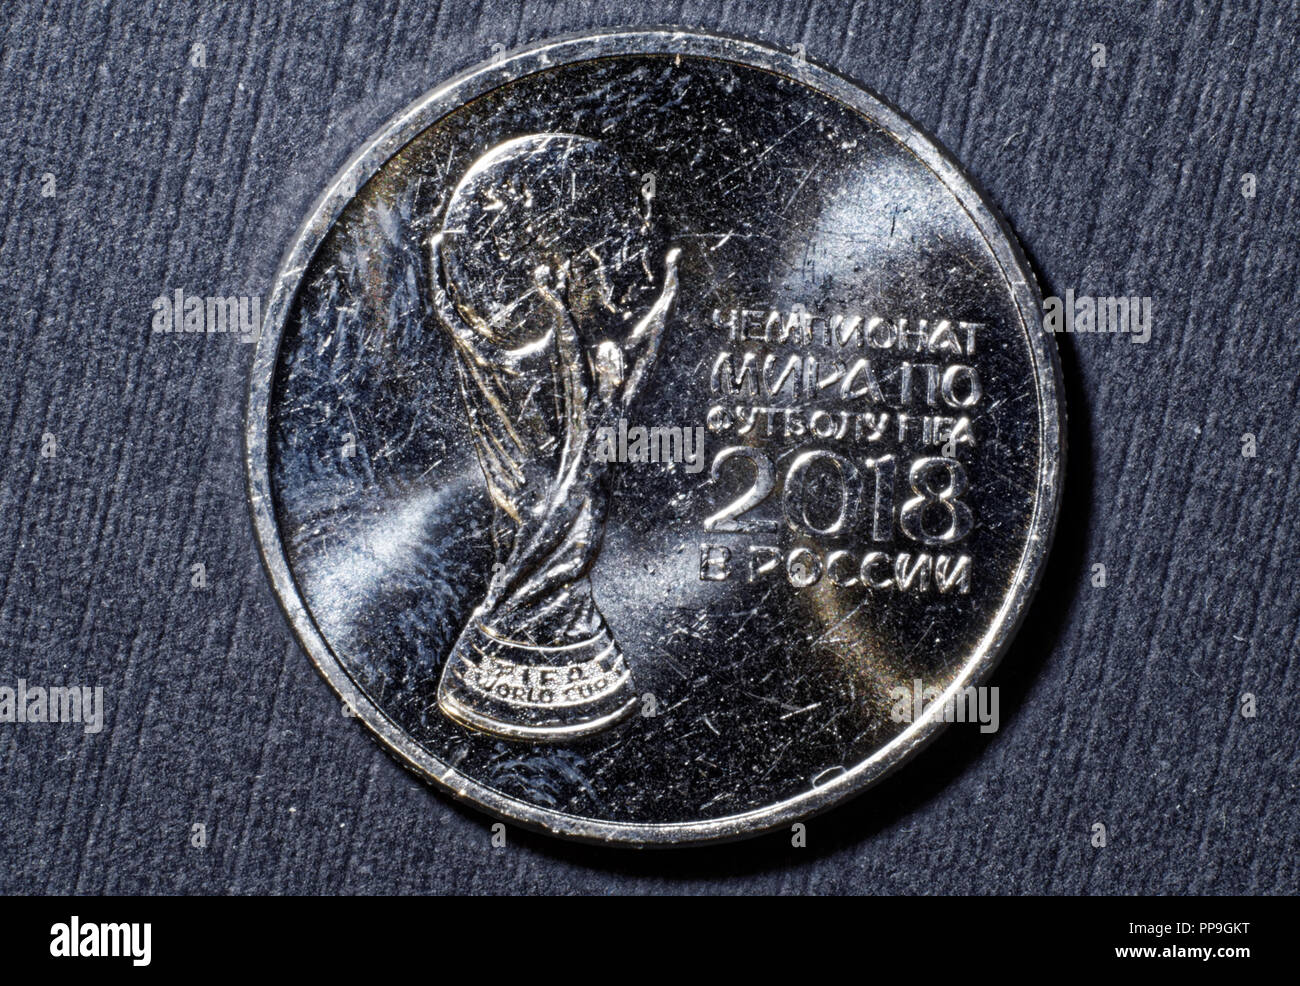 RUSSIA 25 RUBLES 2014 THE SOCHI WINTER OLYMPIC GAMES MASCOTS # 506